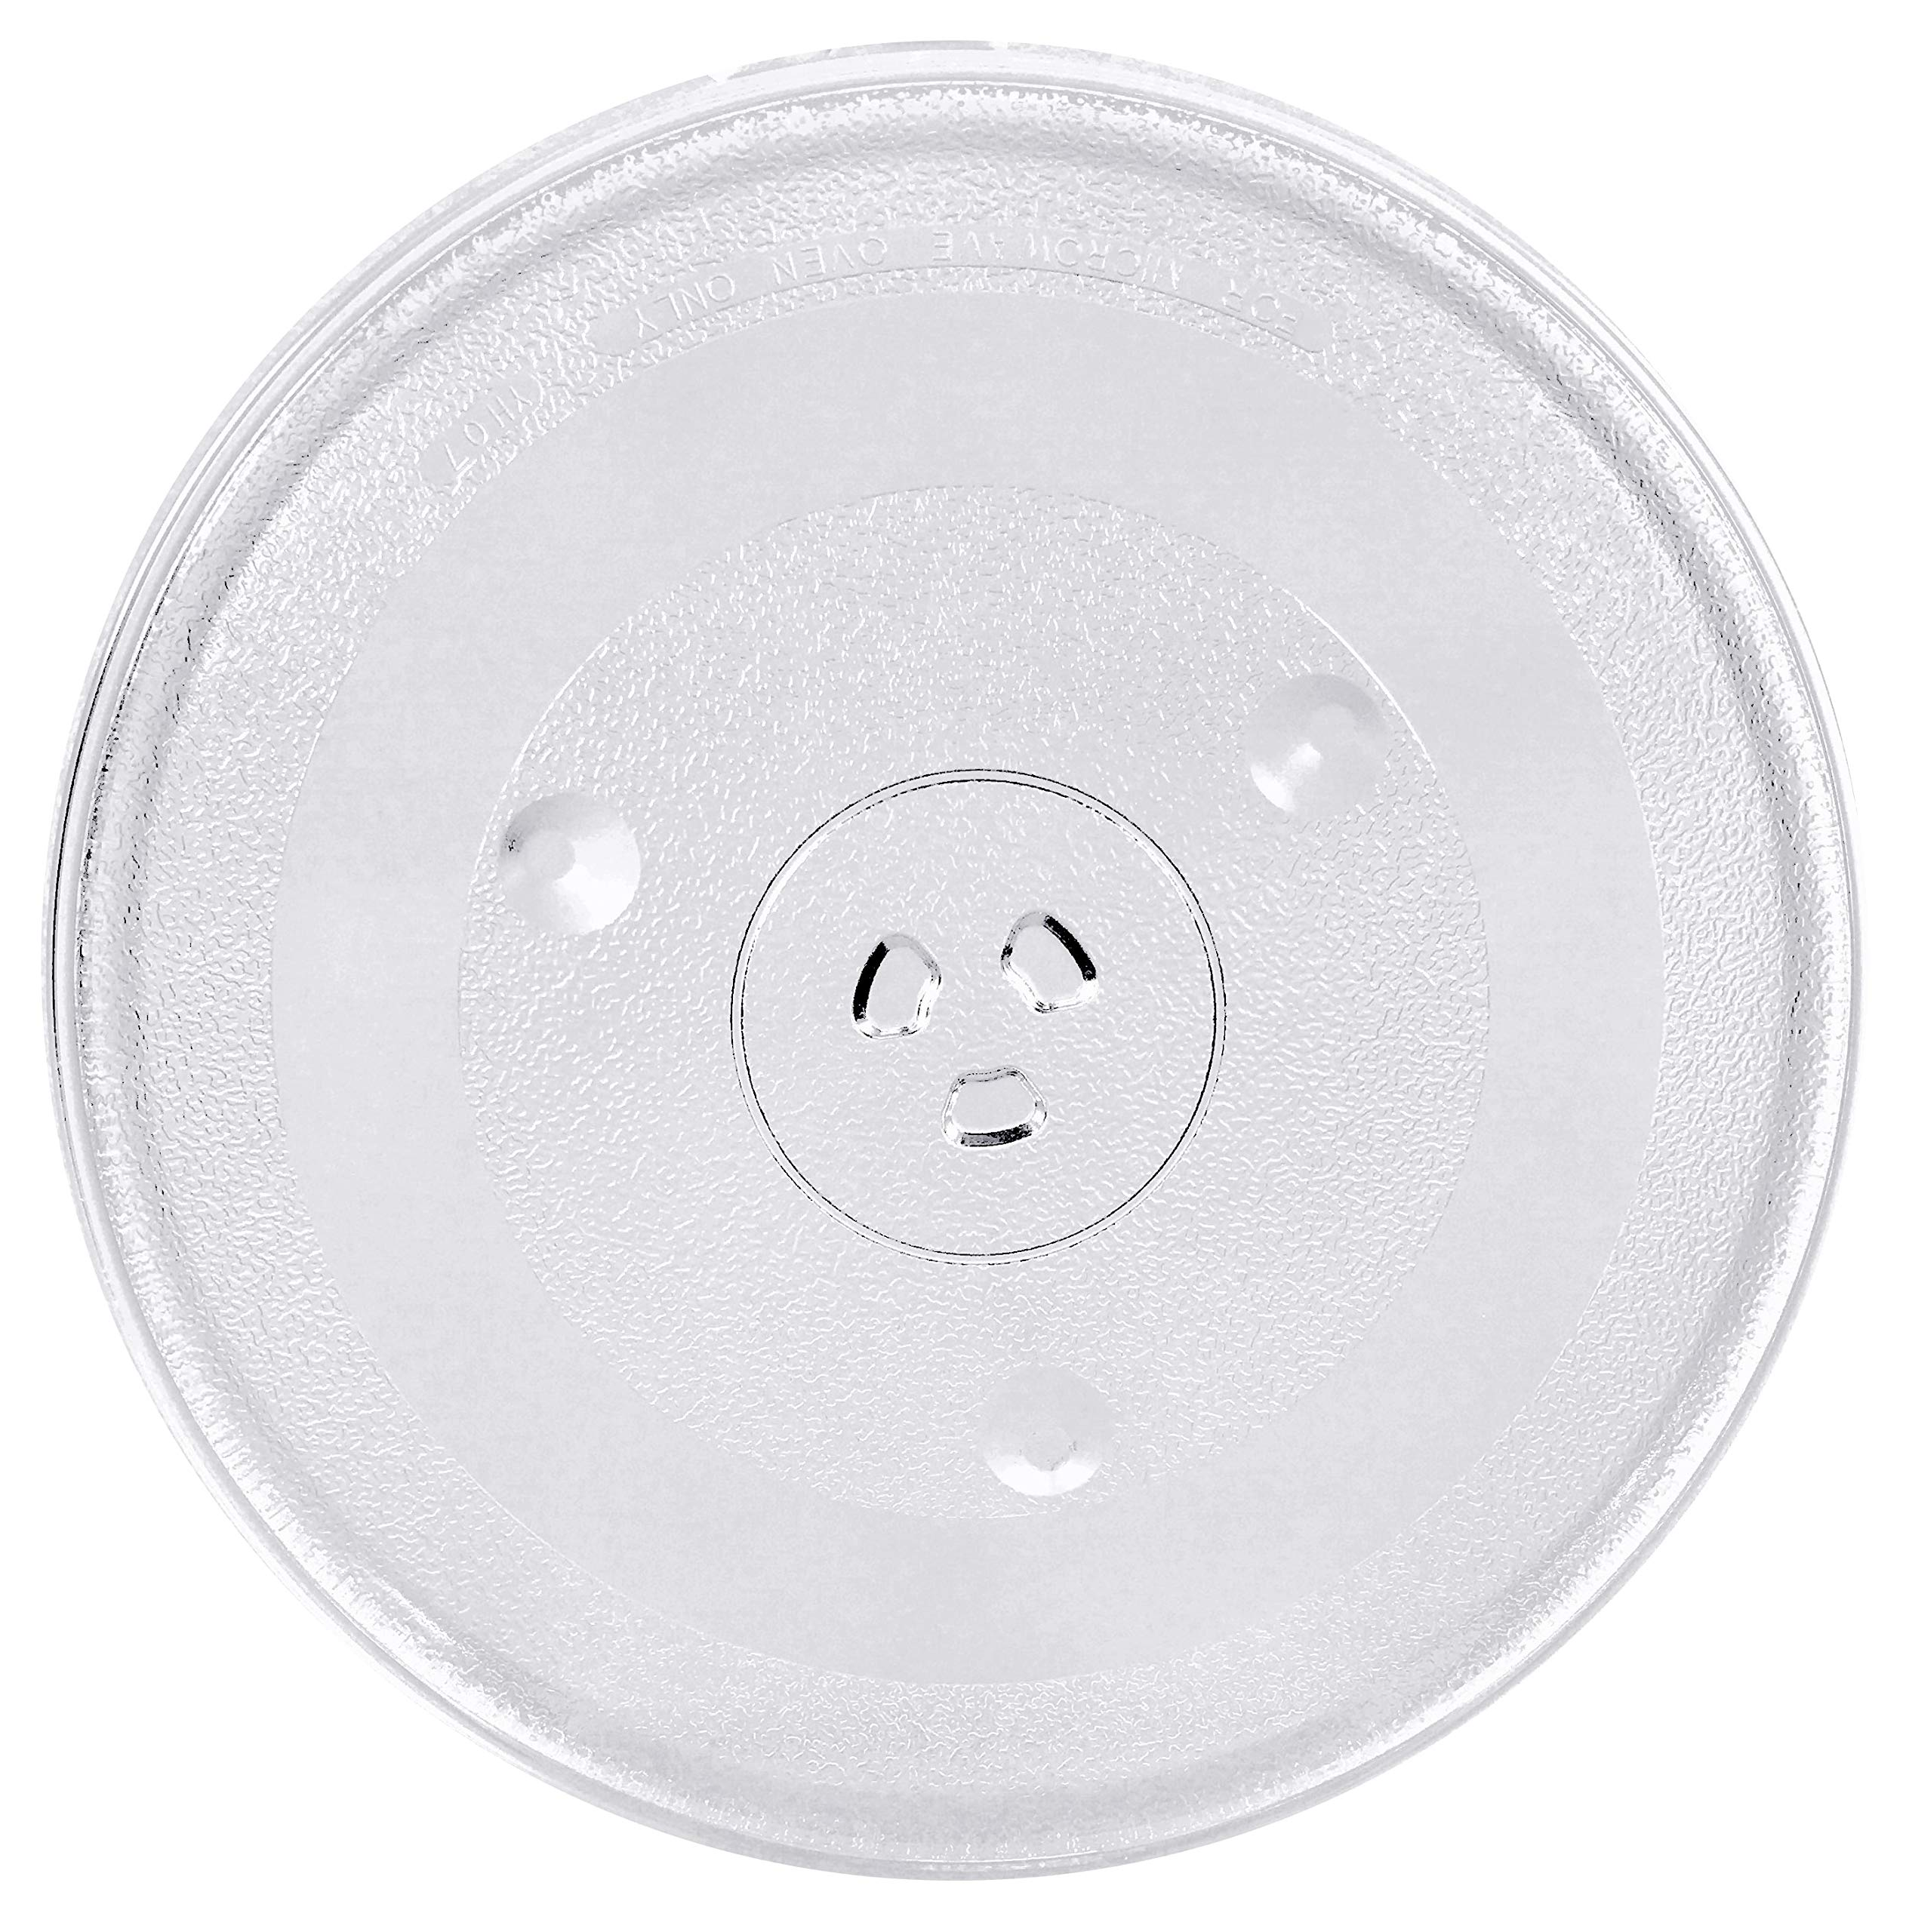 12.4'' Microwave Oven Turntable Replacement Part | 12.4 Inch Micro Wave Glass Plate Replacement Kit | 31.5 cm Round Rotating Ring Dish Tray | 315 mm Circular Glass Turn Table Top For Microwaves. by MRIdea Creations